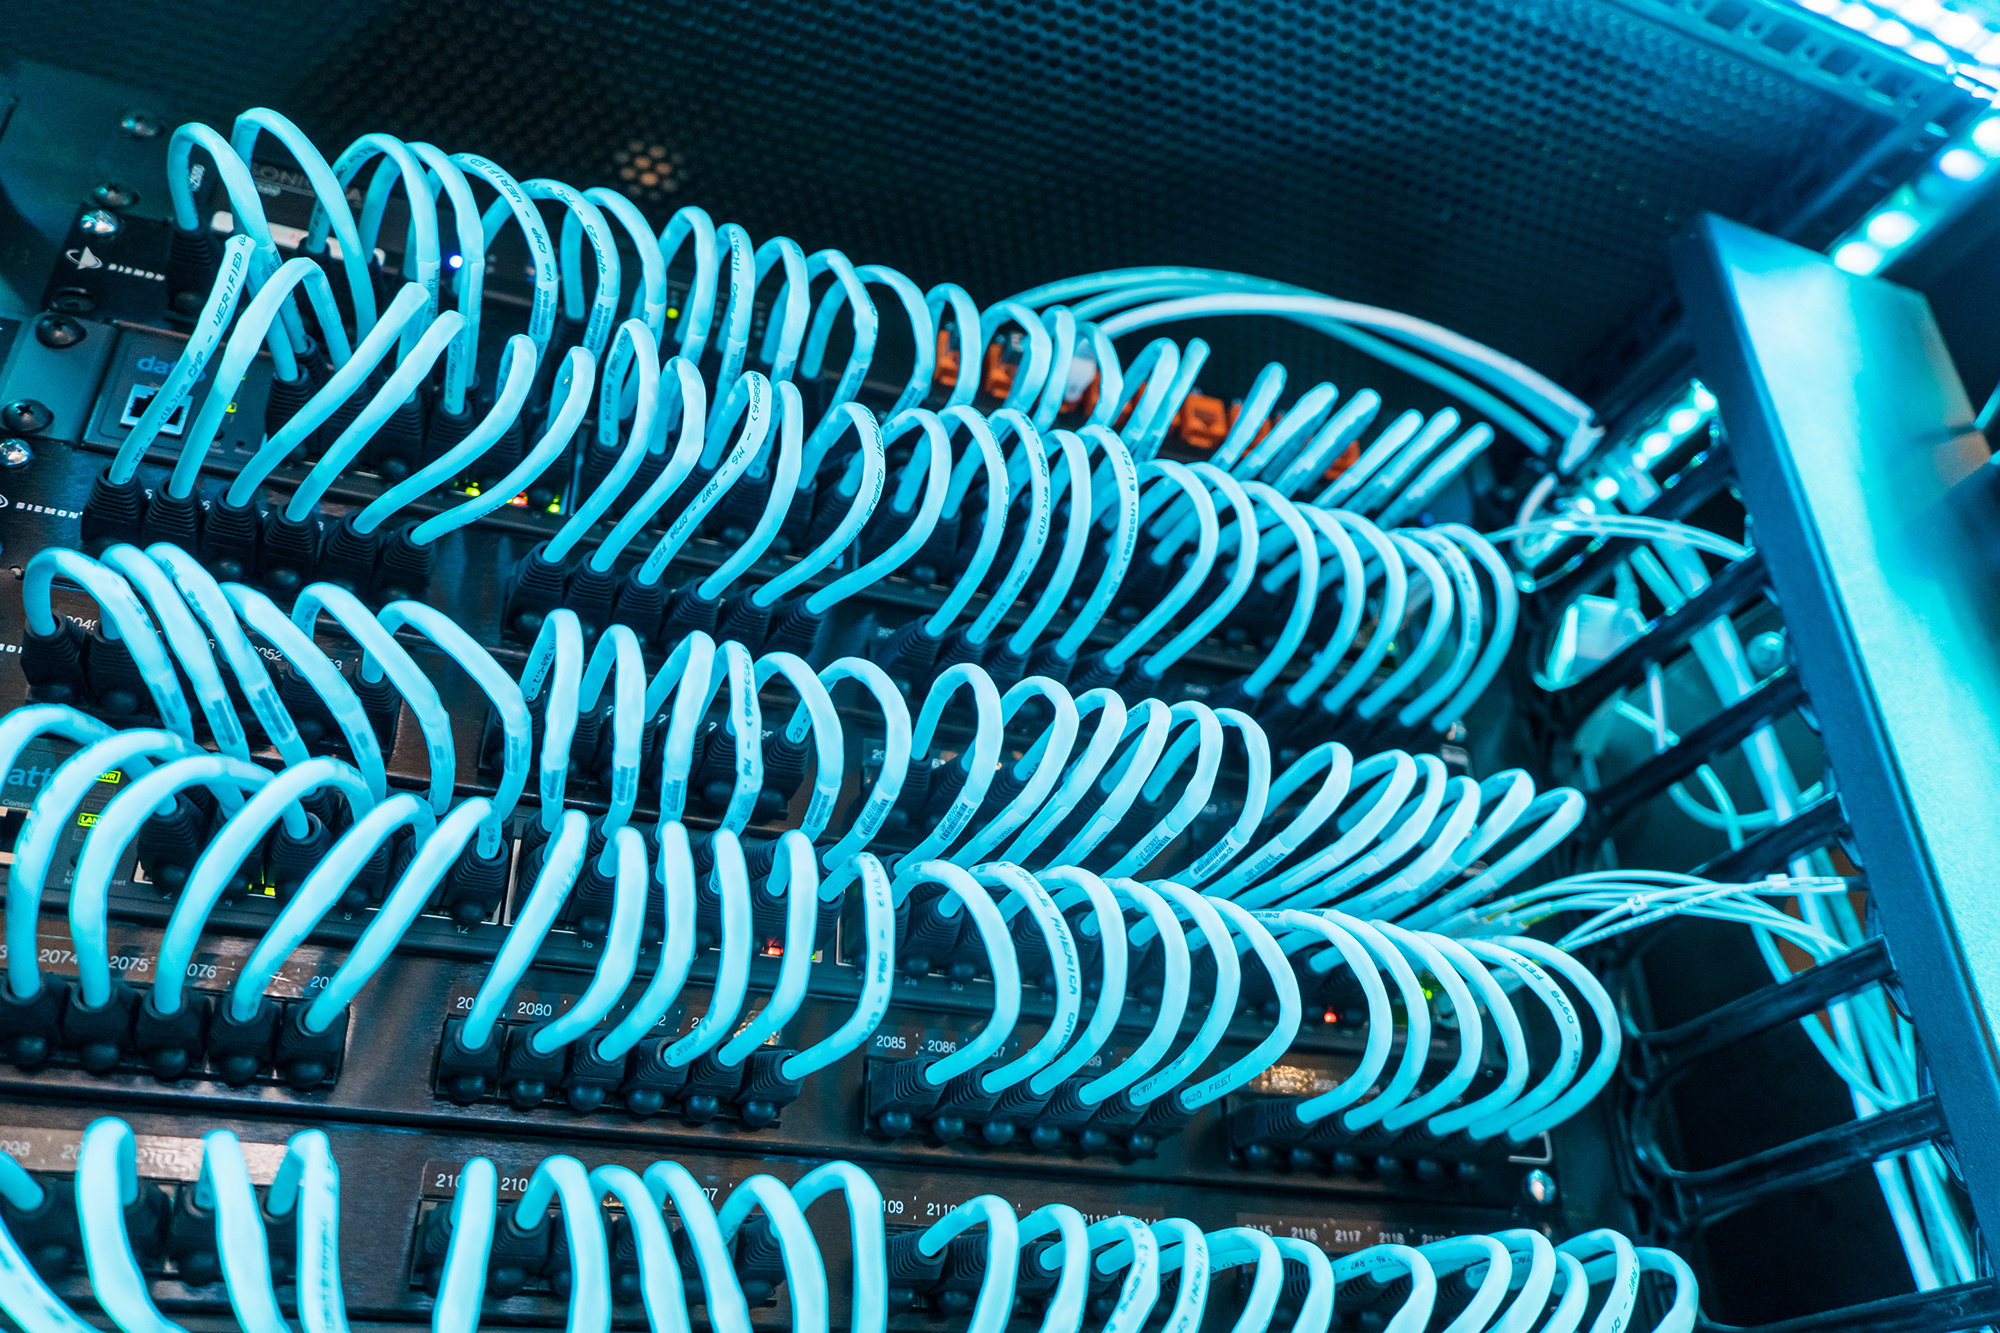 Blue, glowing cables plugged into hardware